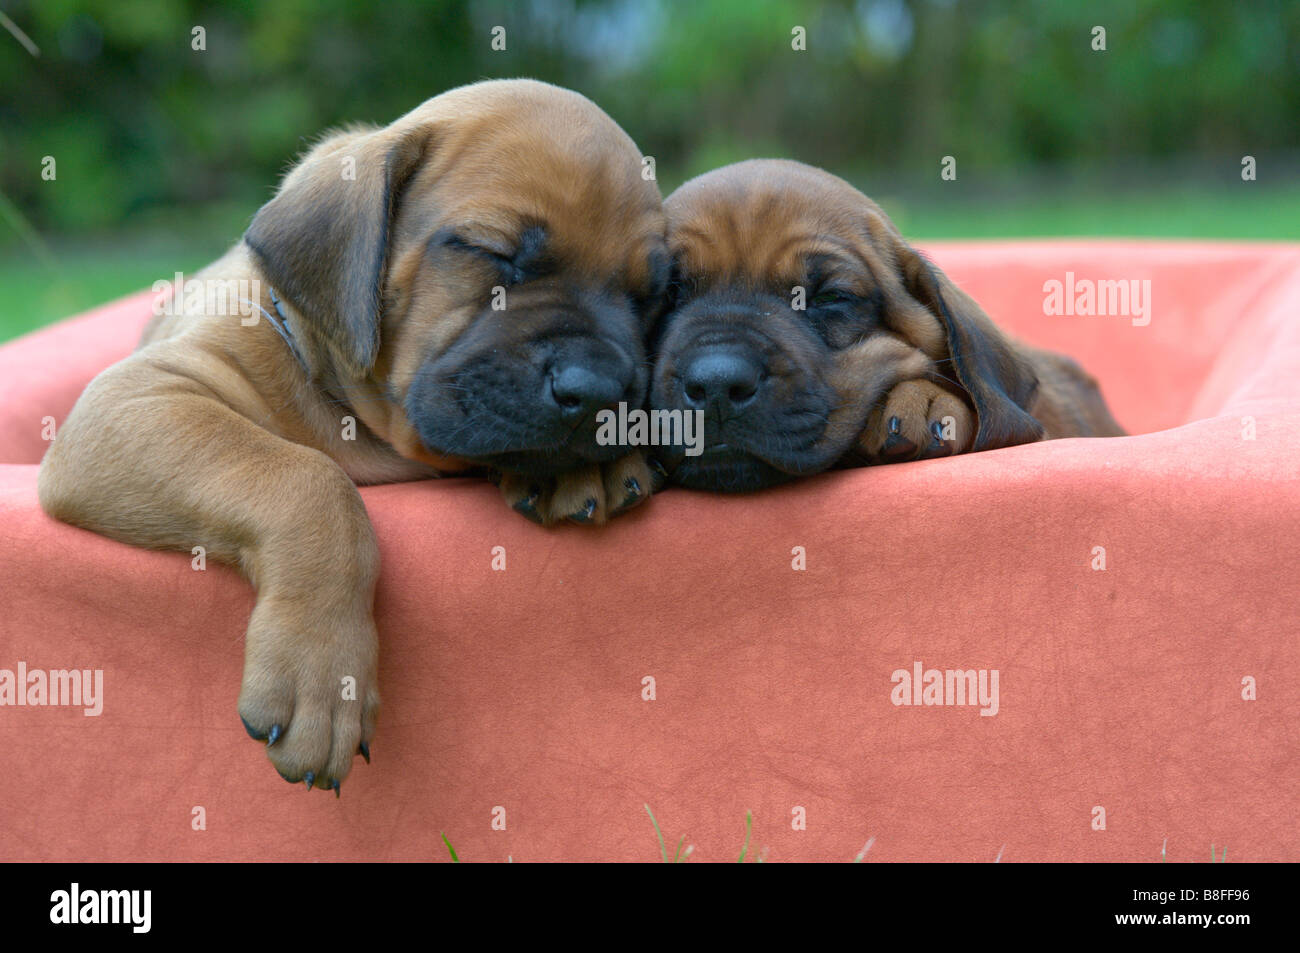 Rhodesian Ridgeback (Canis lupus familiaris), two puppies sleeping - Stock Image